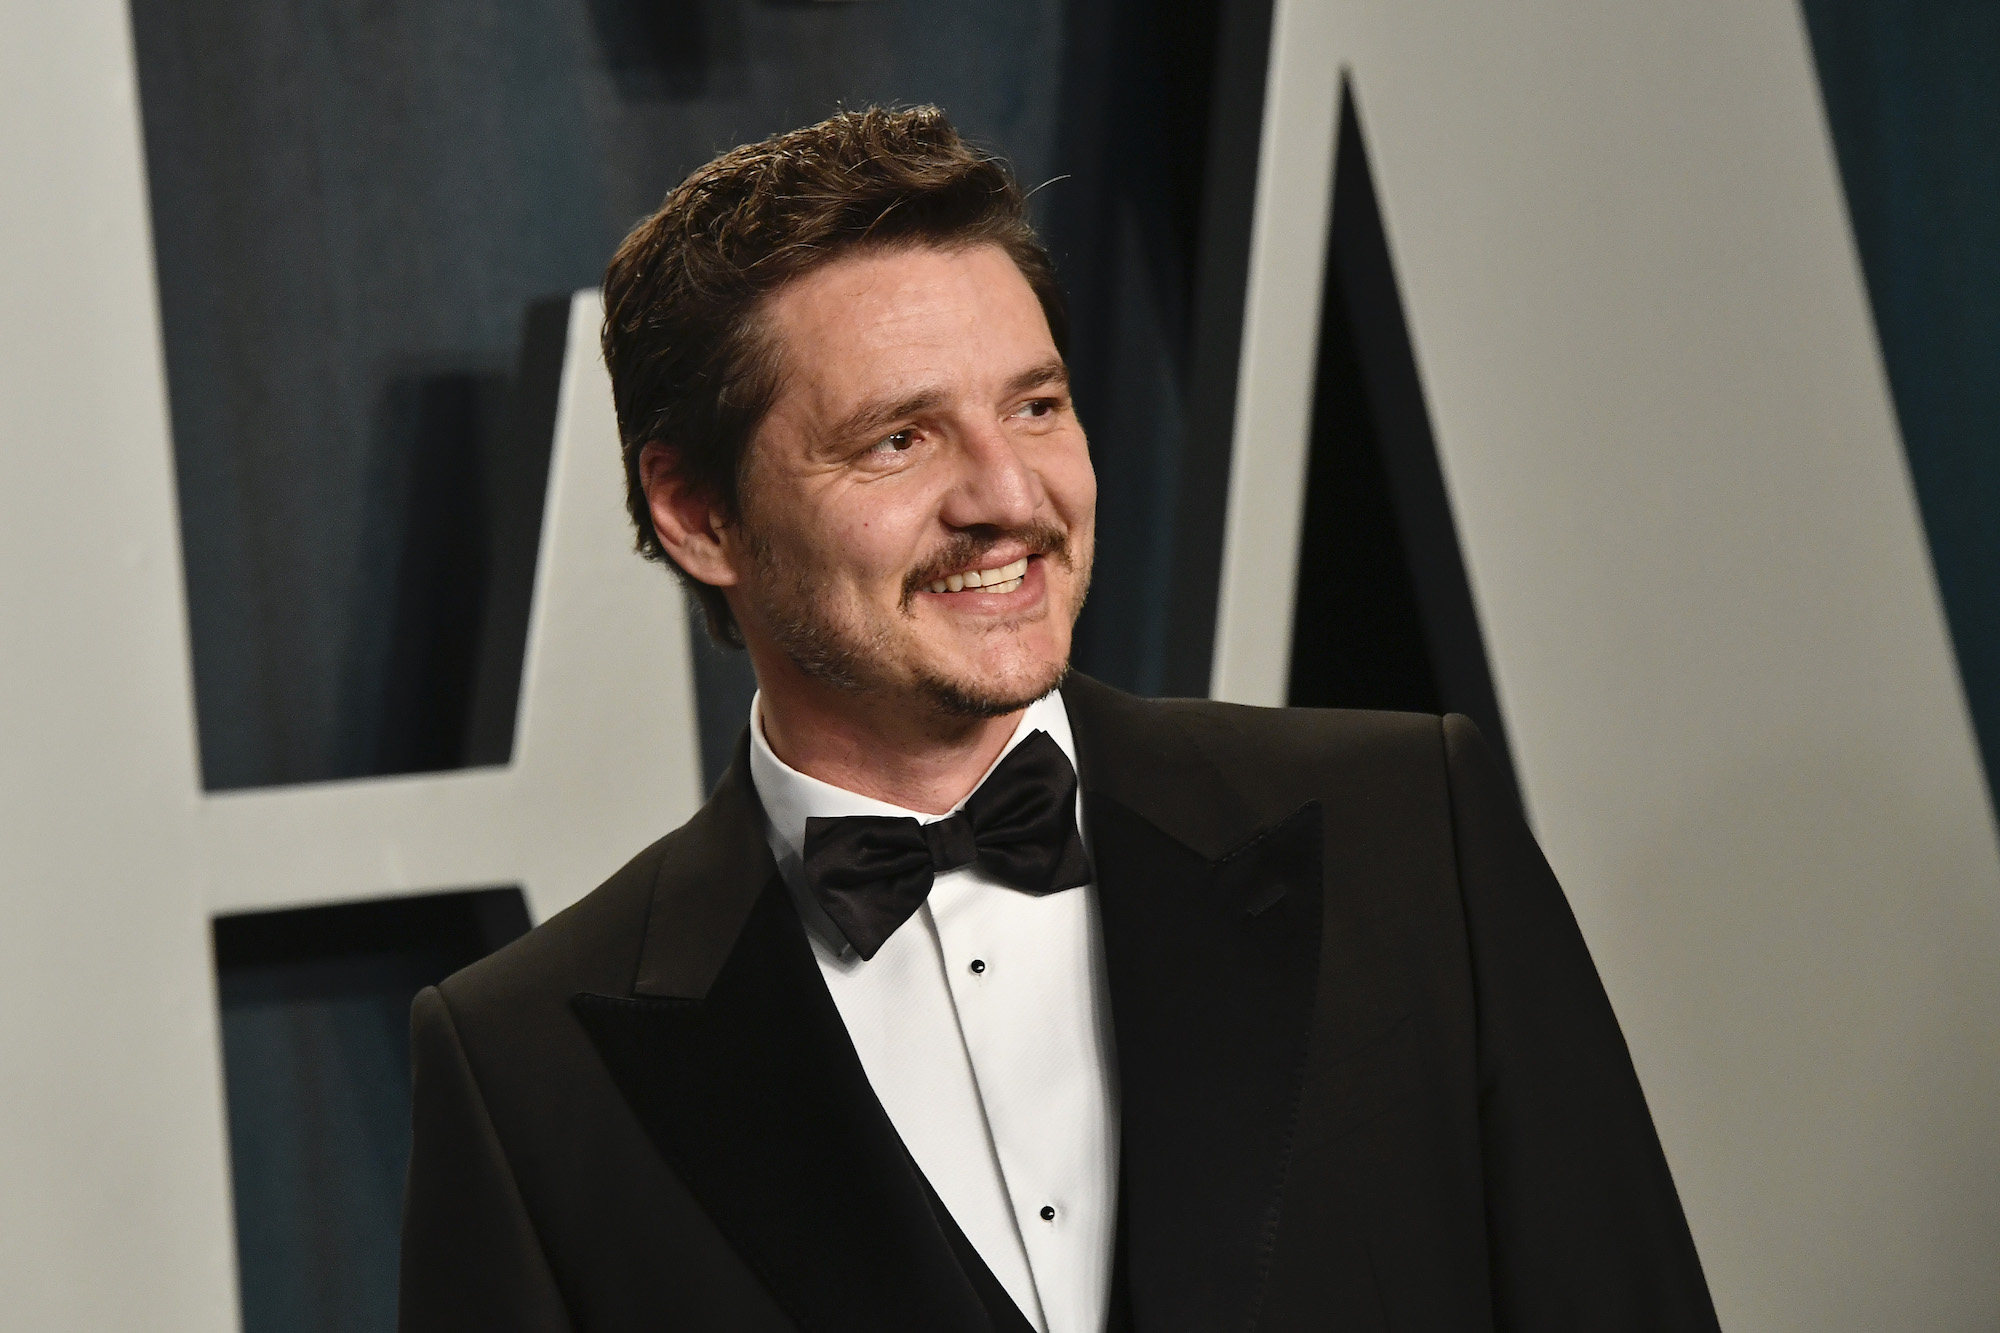 Pedro Pascal at the 2020 Vanity Fair Oscar Party at Wallis Annenberg Center for the Performing Arts on Feb. 09, 2020